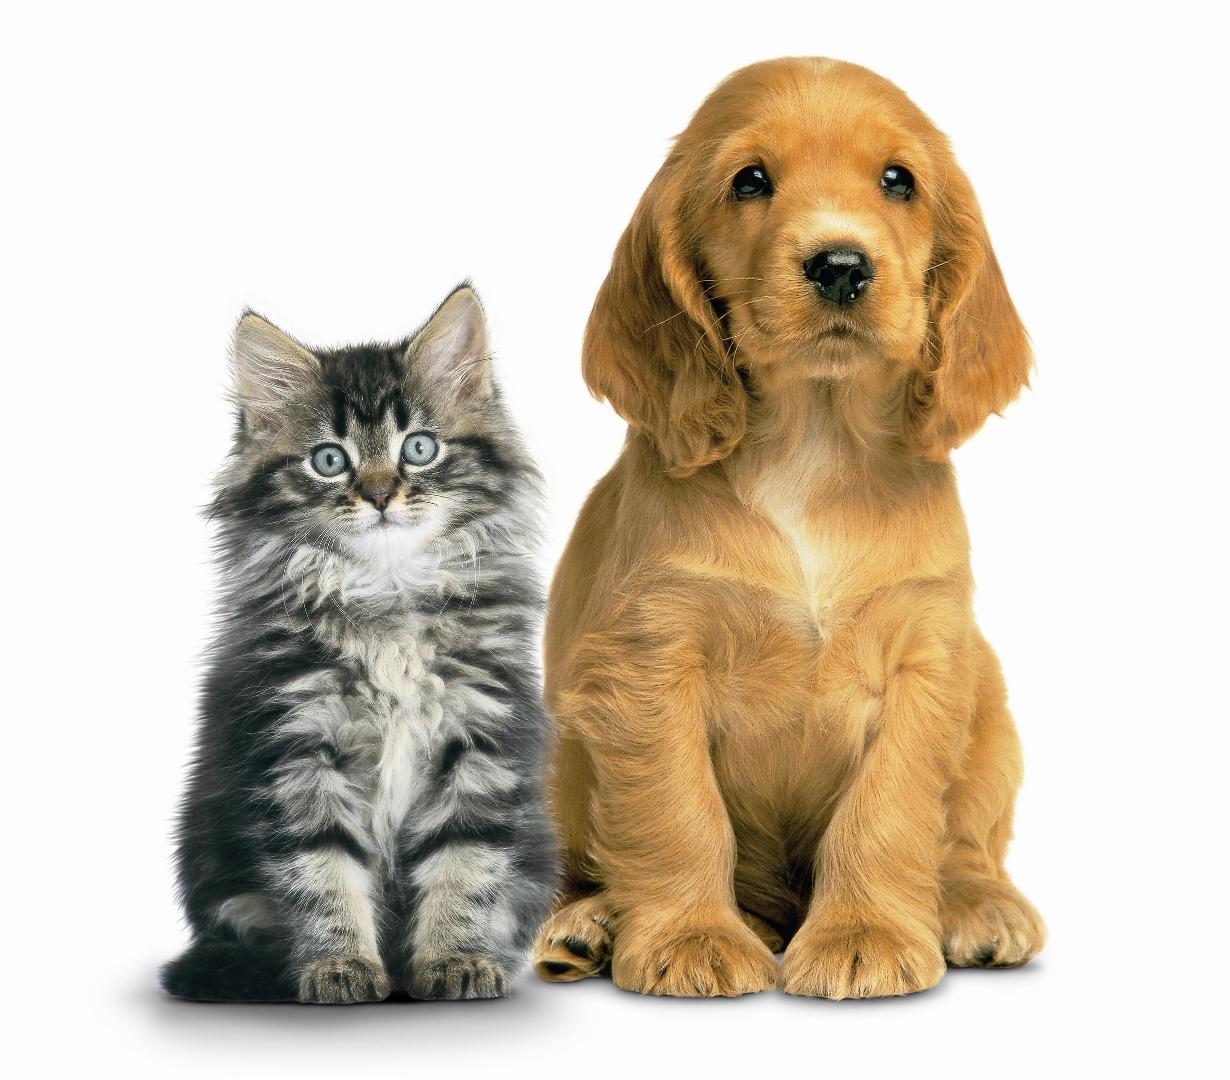 We are a small but mighty NotForProfit 501c3 NoKill dog and cat rescue organization in South Florida comprised solely of volunteers who love animals